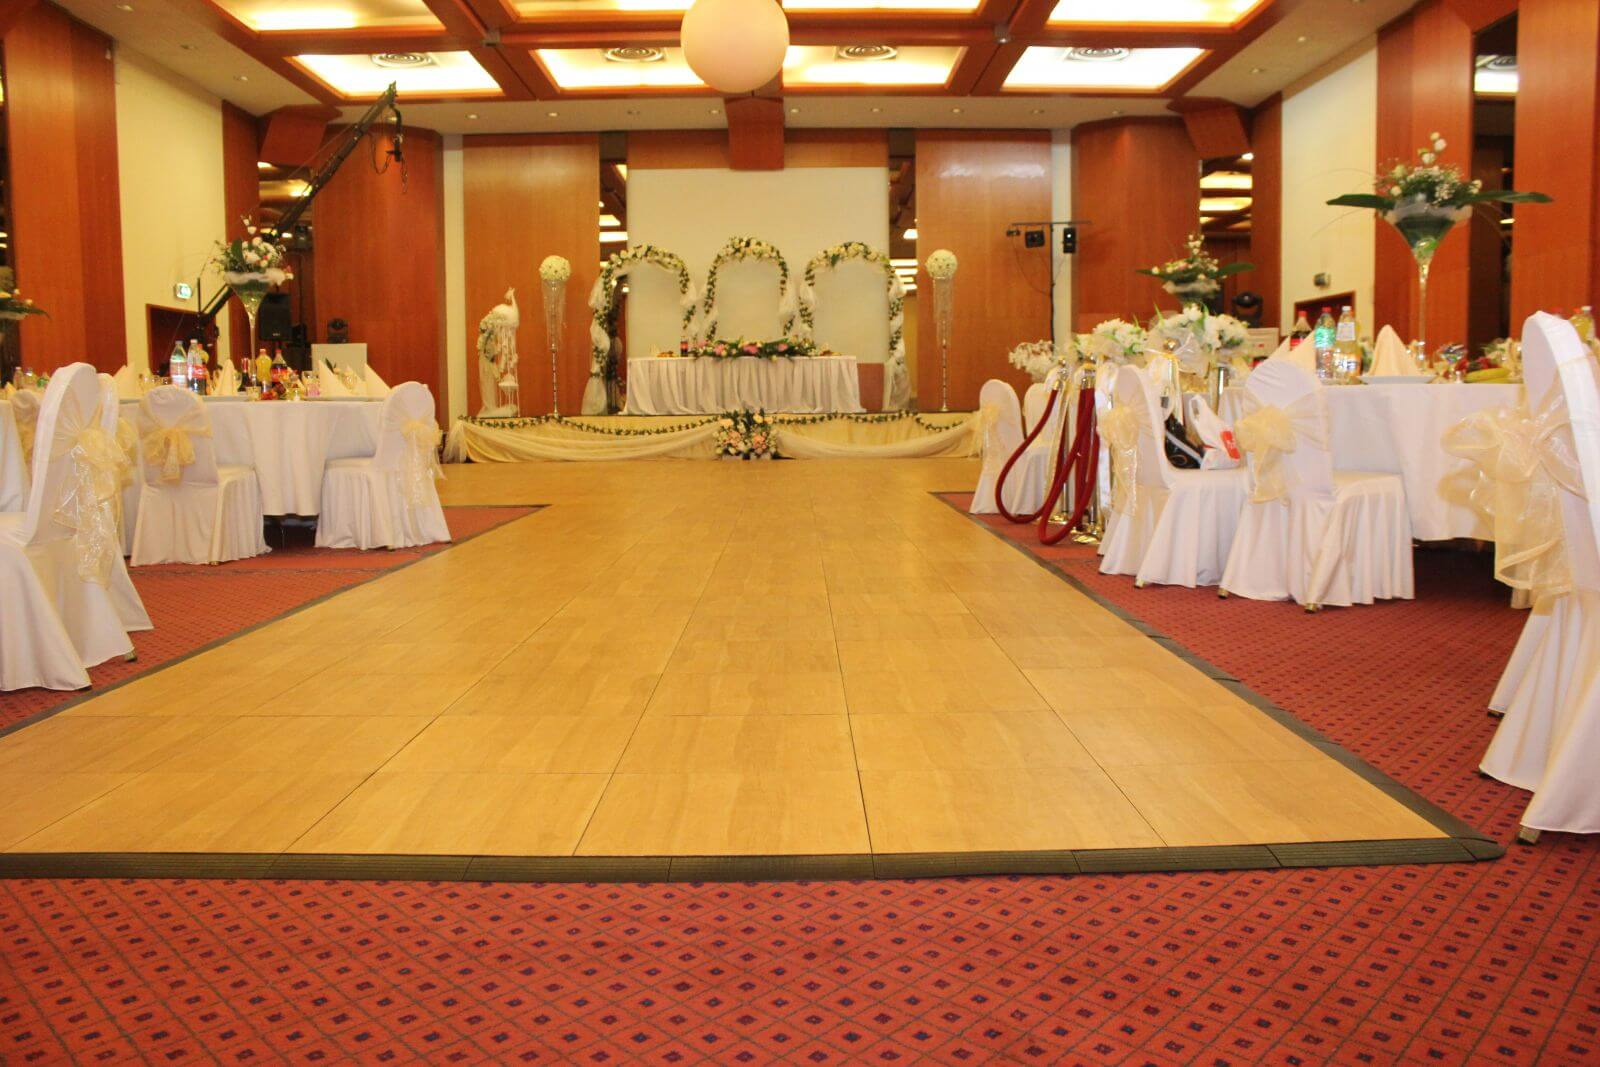 SnapLock Plus Maple style aisle and flooring at this indoor wedding venue